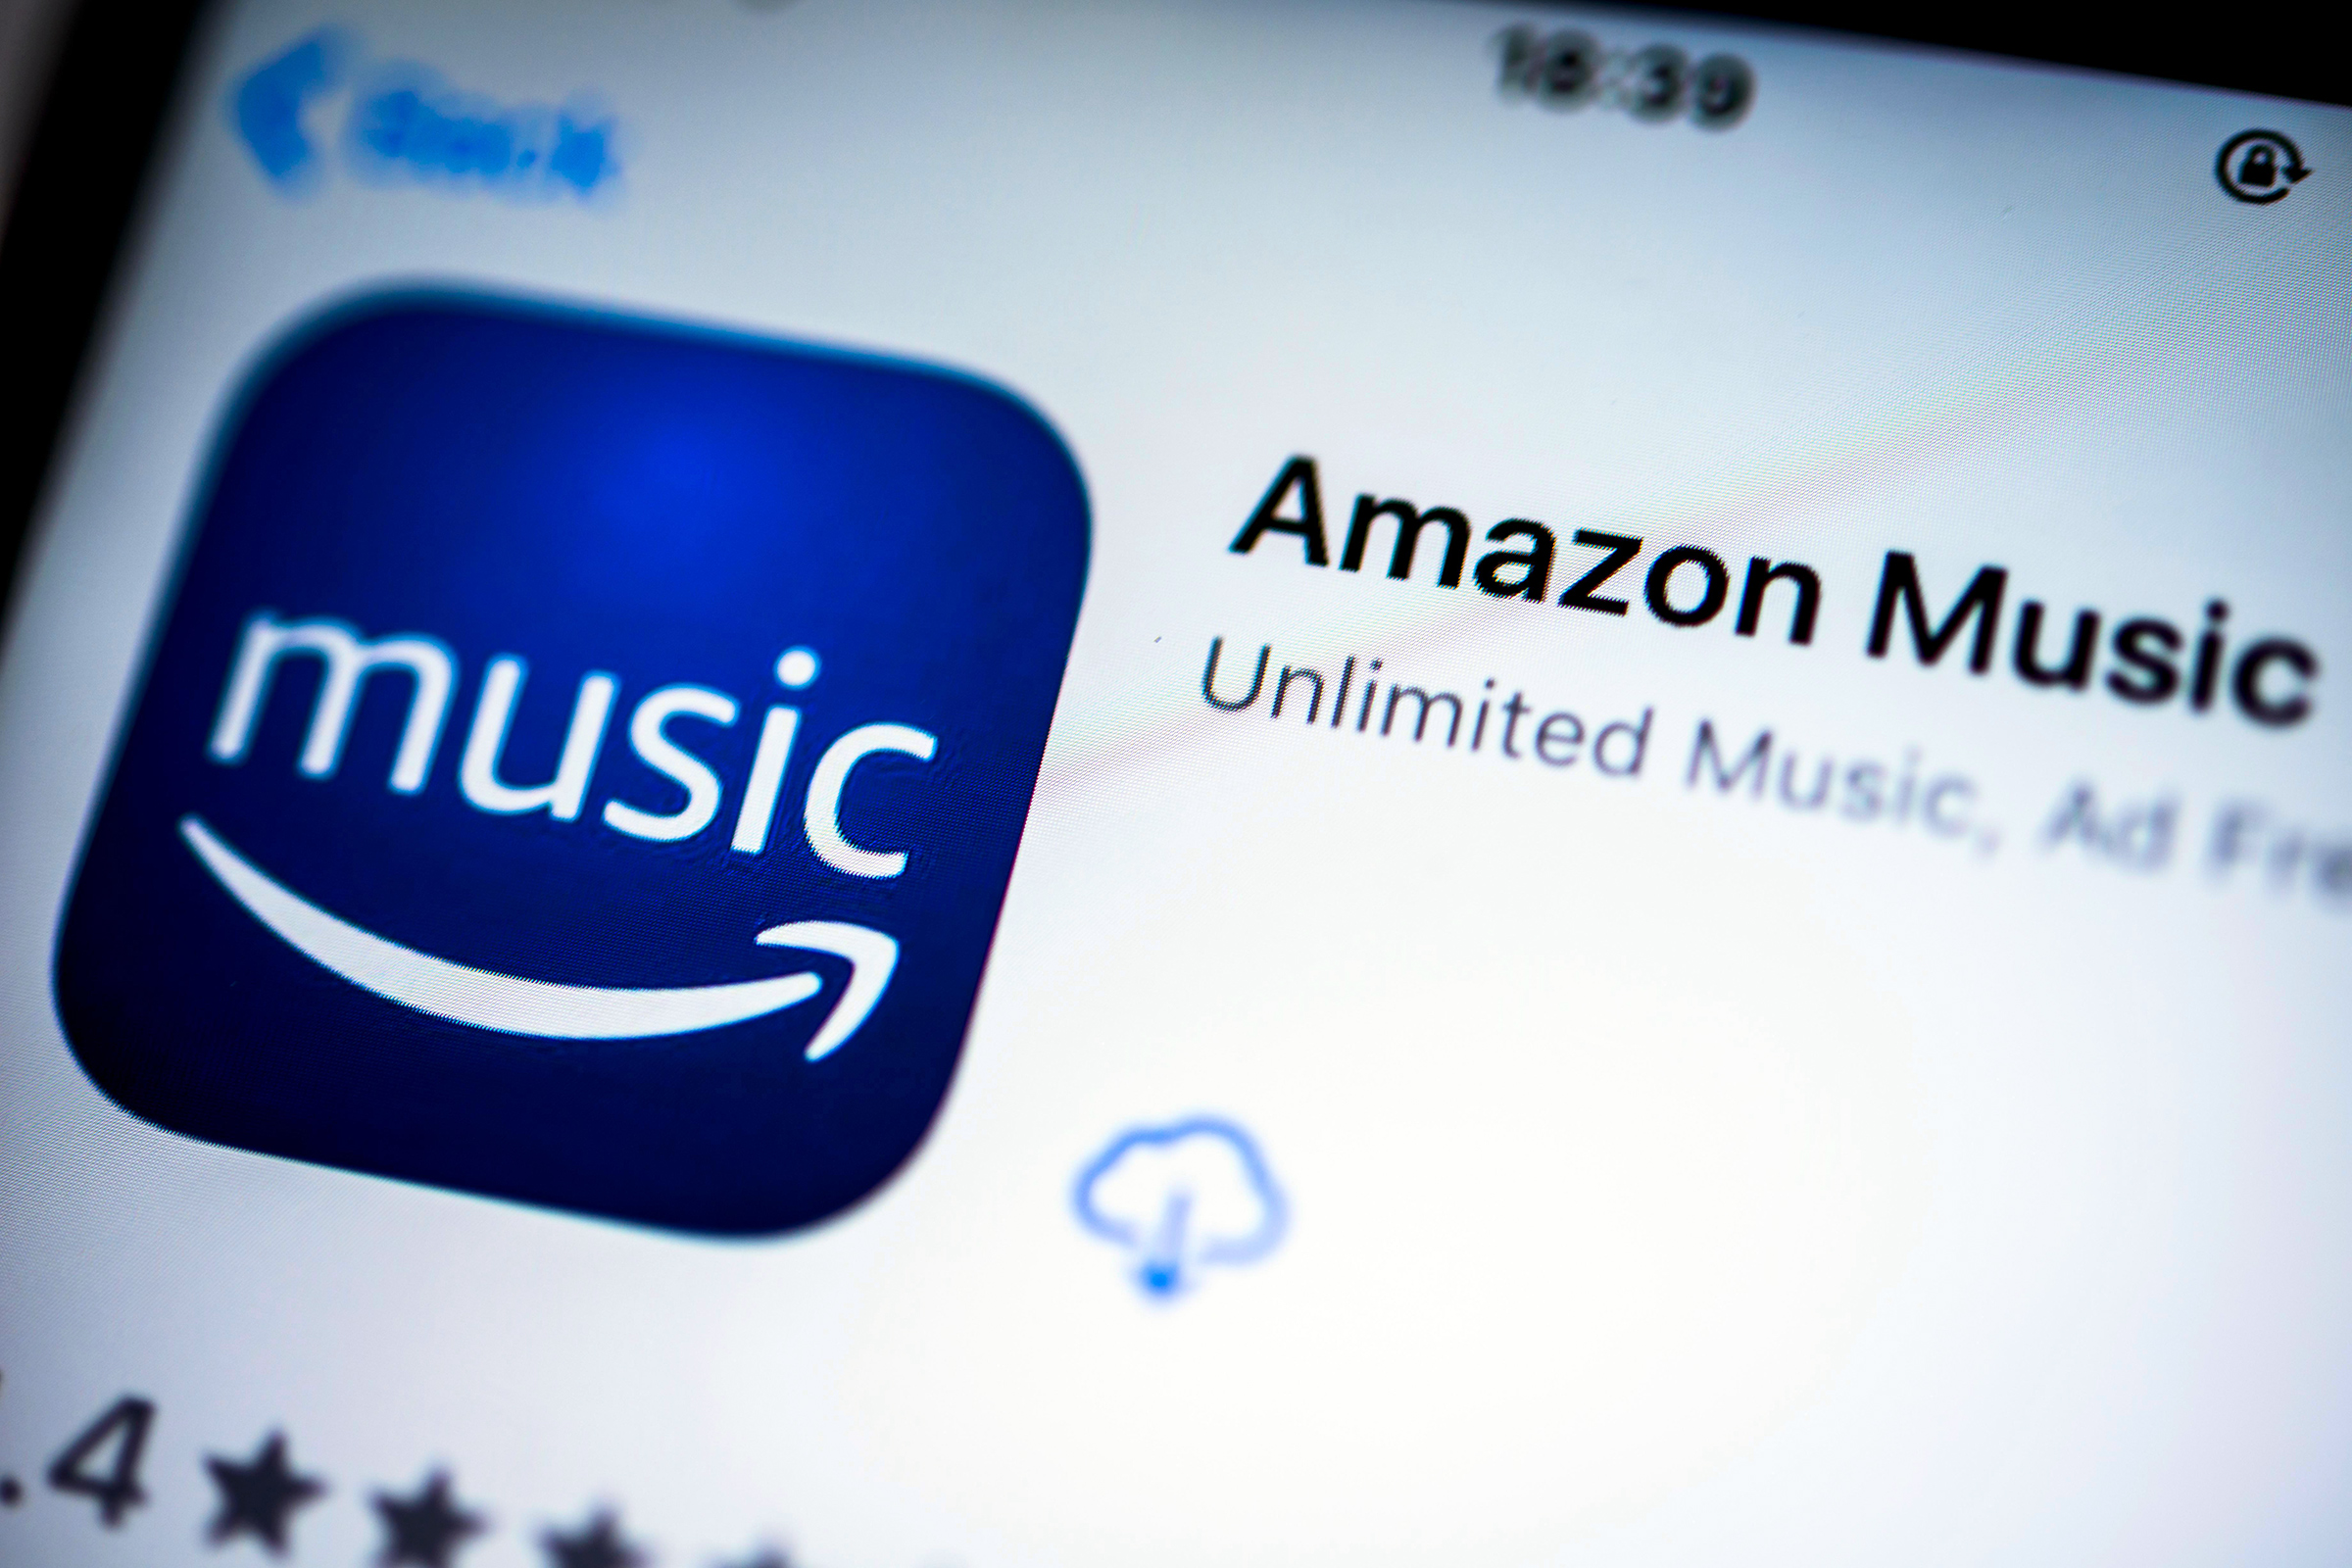 Amazon Music Is Available for Free Now